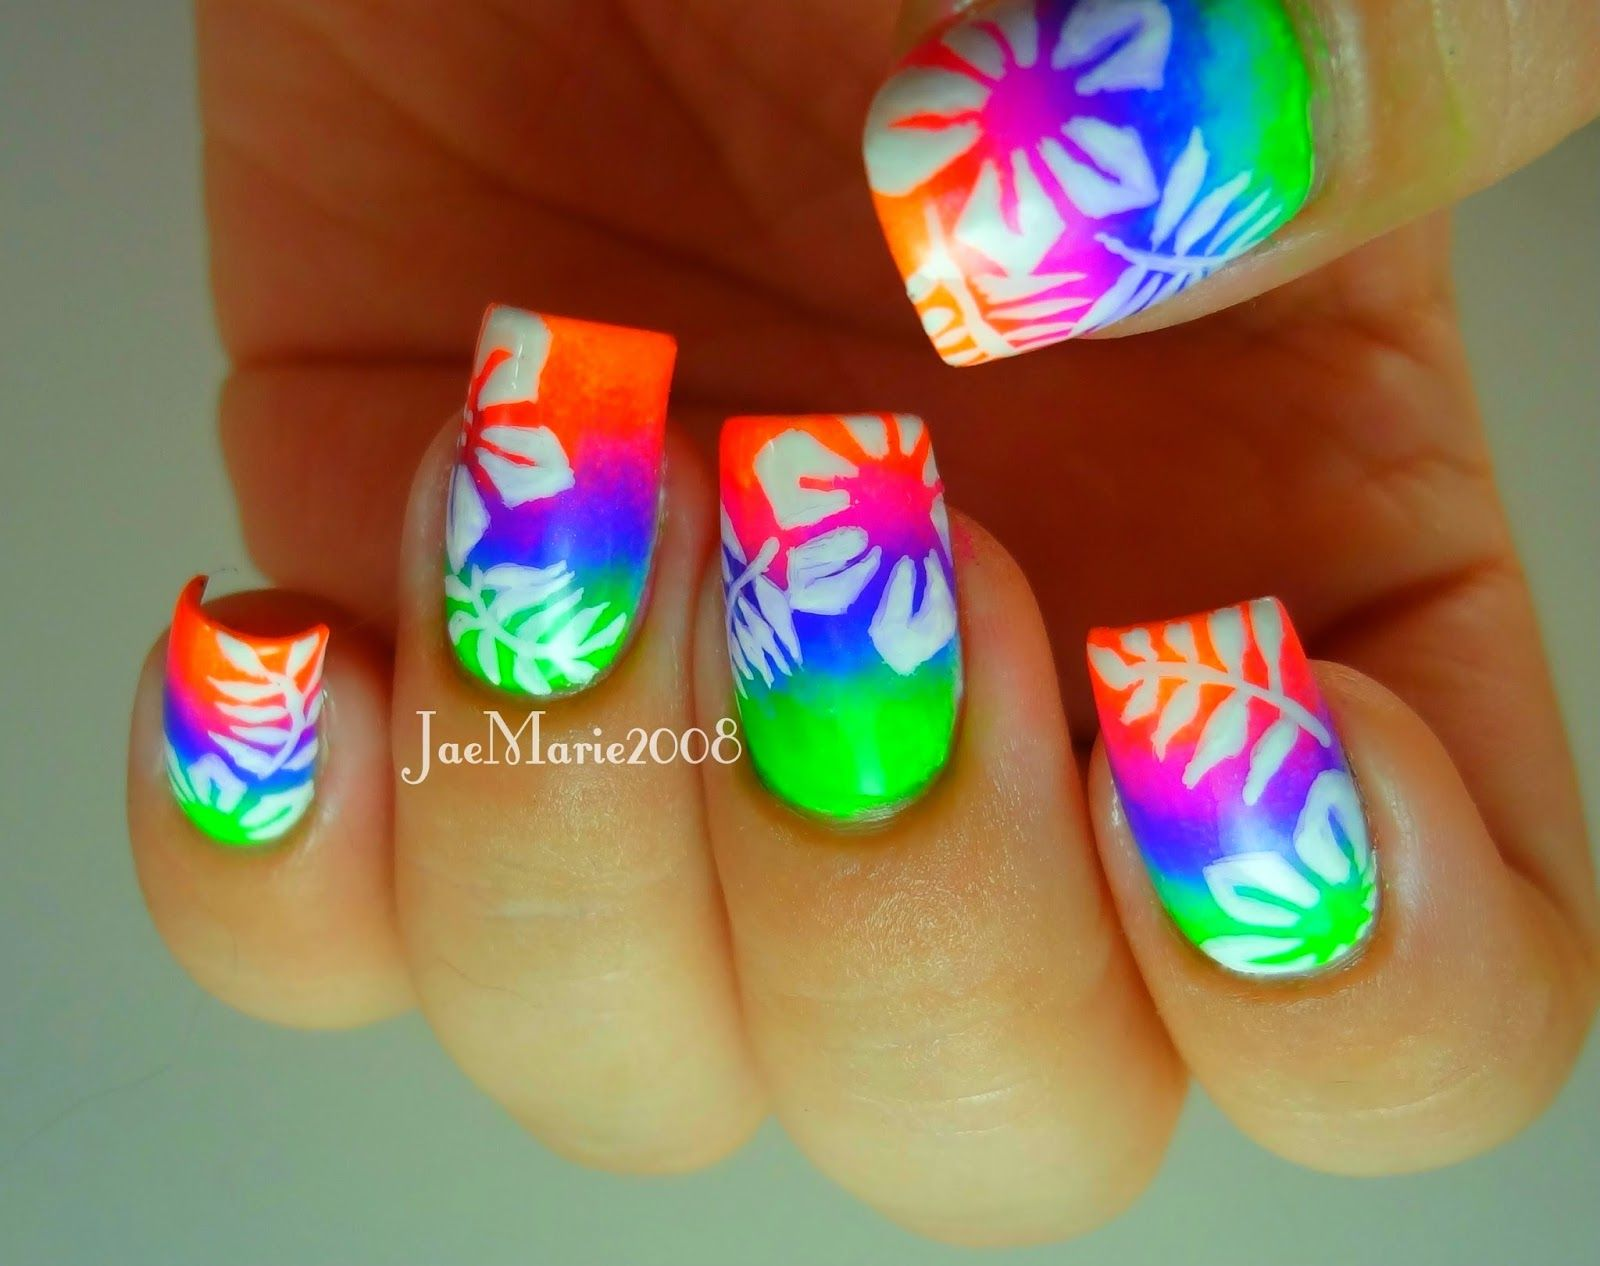 Summer acrylic nail designs nails pinterest summer acrylic summer acrylic nail designs prinsesfo Gallery